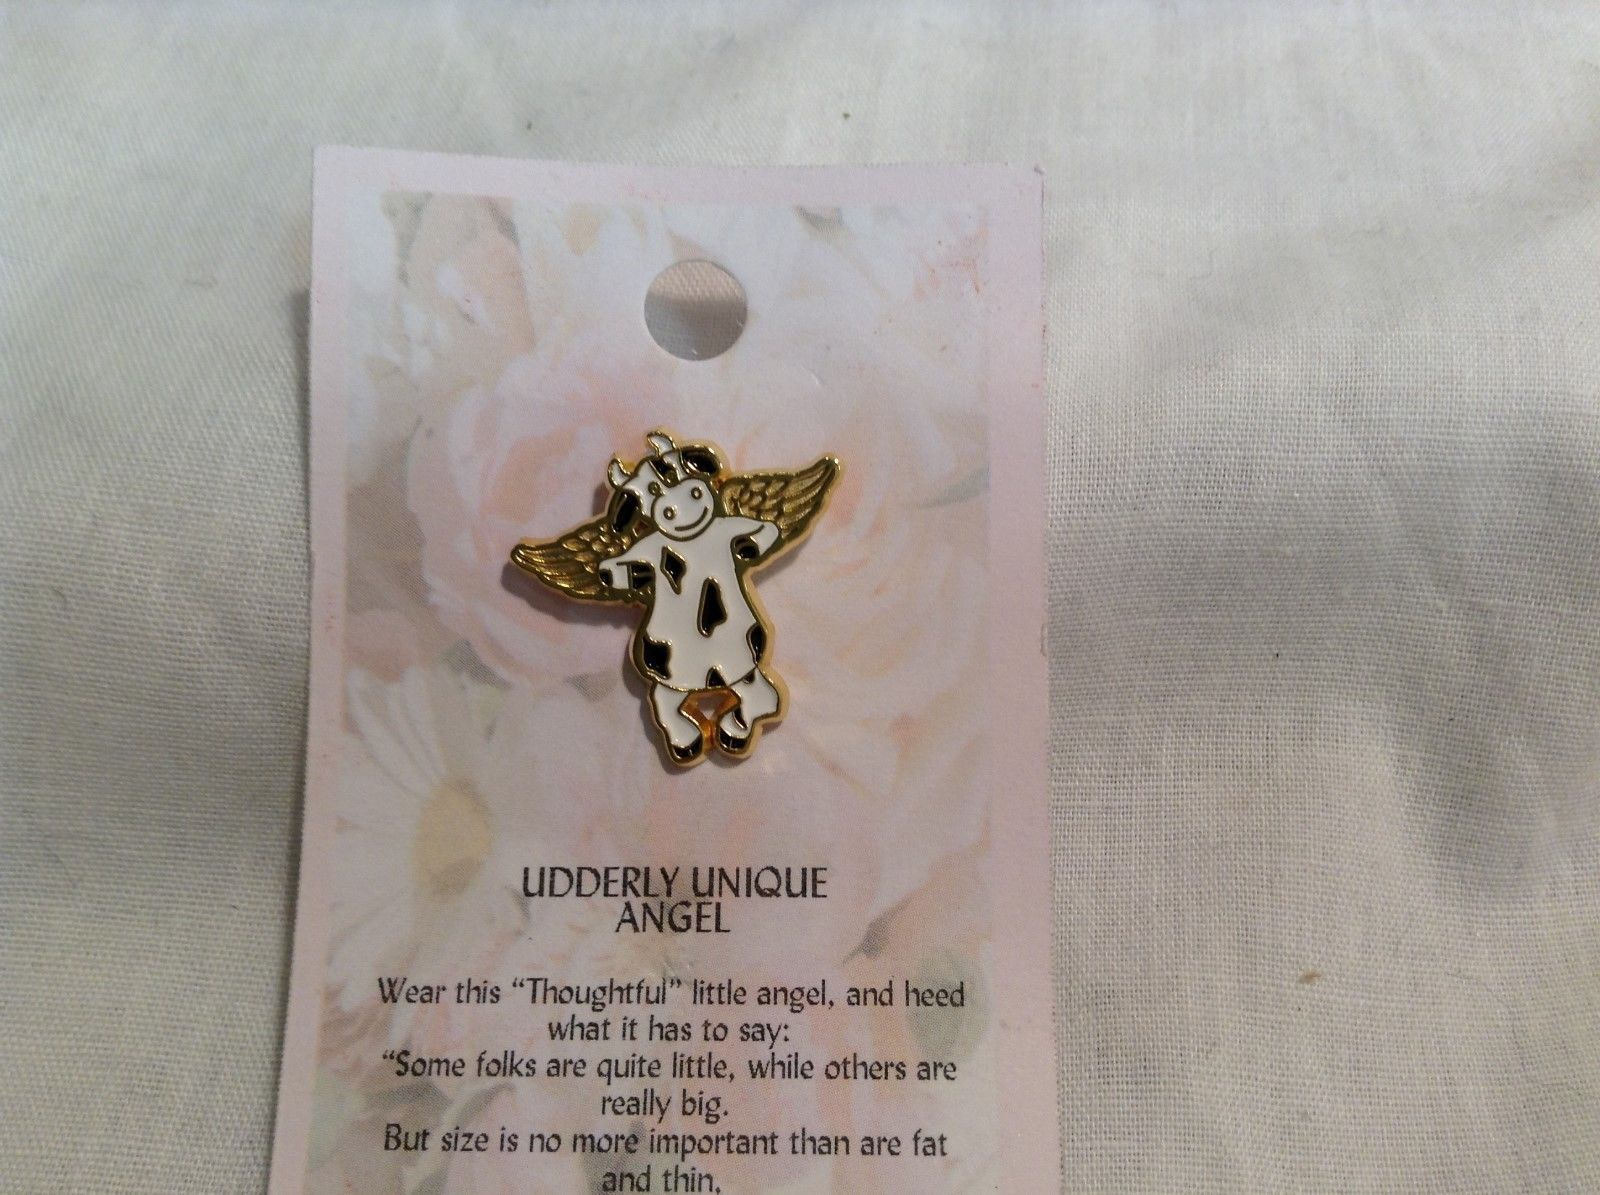 NEW Cats Meow Udderly Unique Cow Angel Pin w Gold Outline